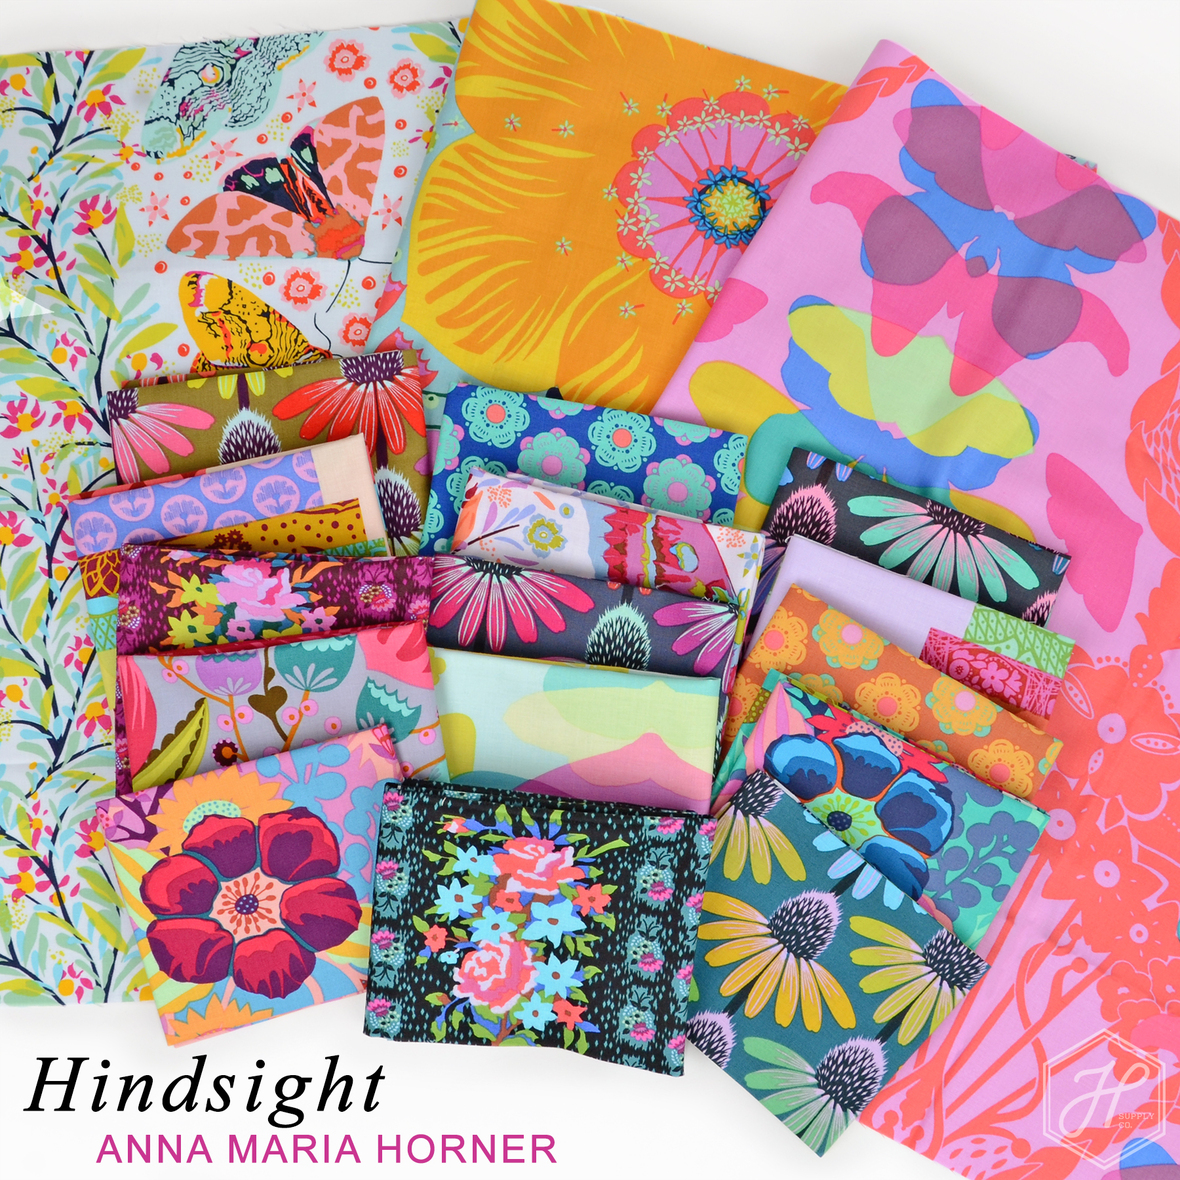 Hindsignt fabric collection anna maria horner at hawthorne supply co